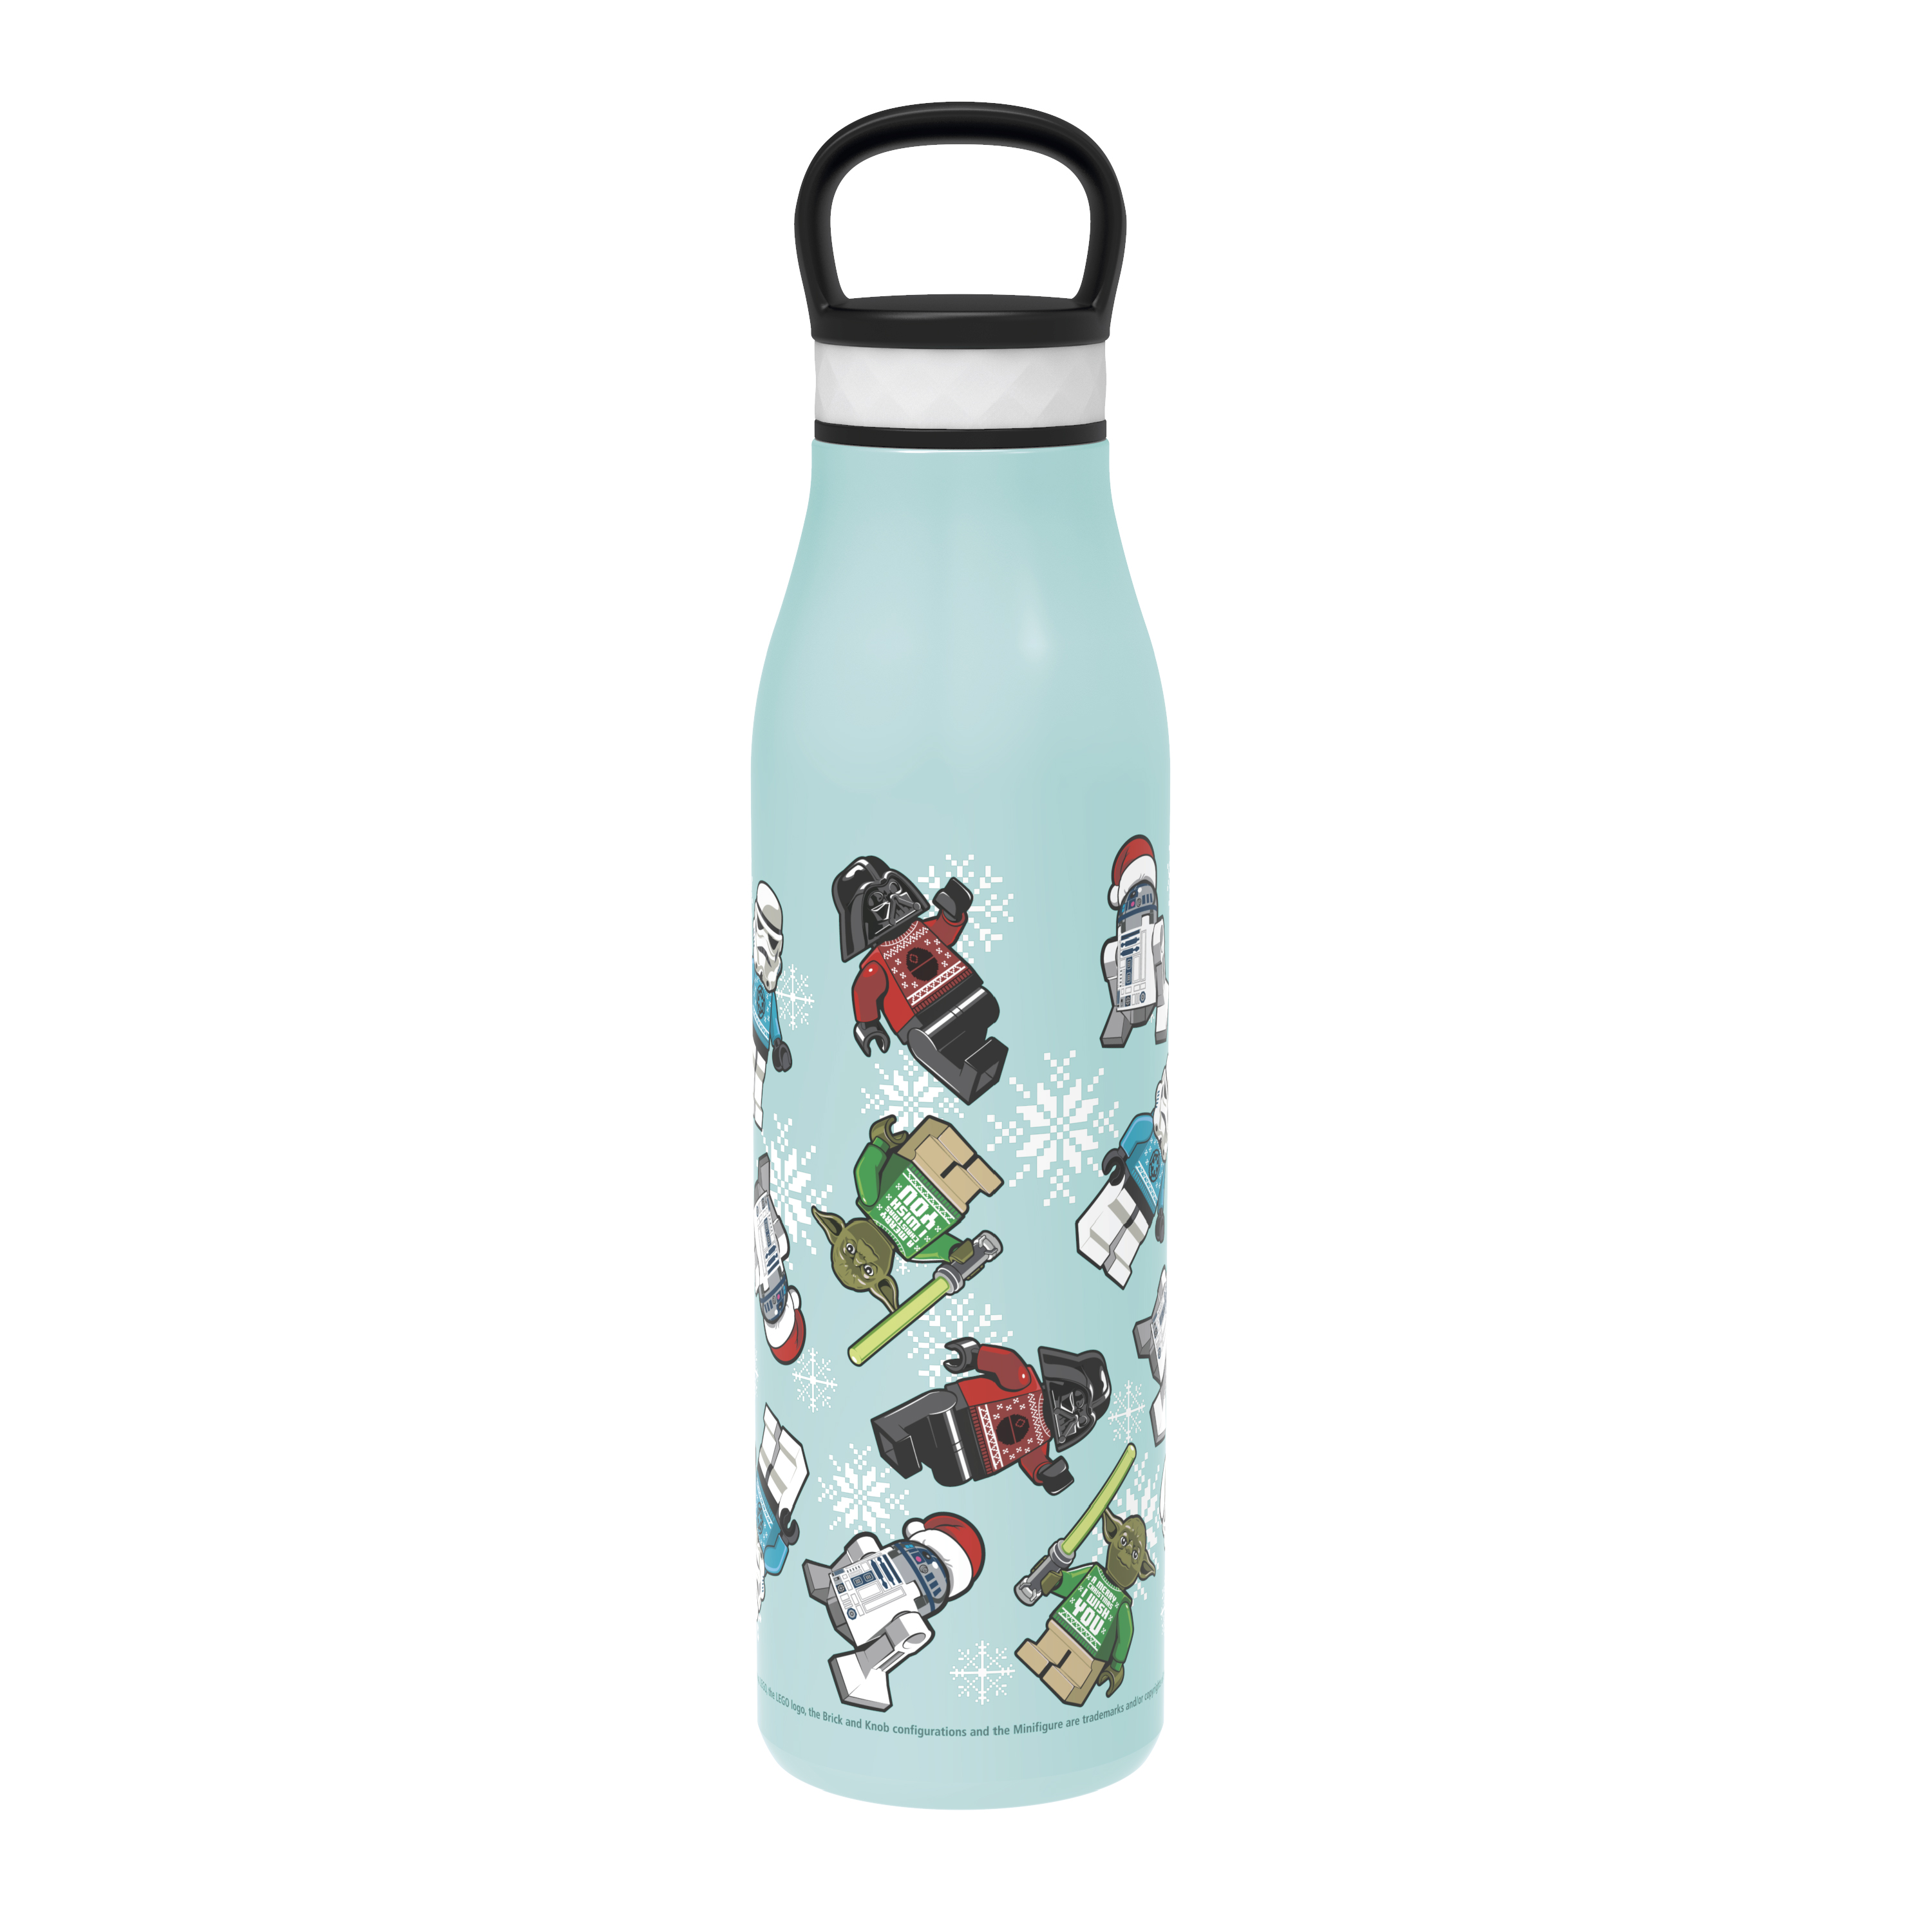 Lego Star Wars 20 ounce Stainless Steel Vacuum Insulated Water Bottle, R2-D2, Yoda and Darth Vader slideshow image 1